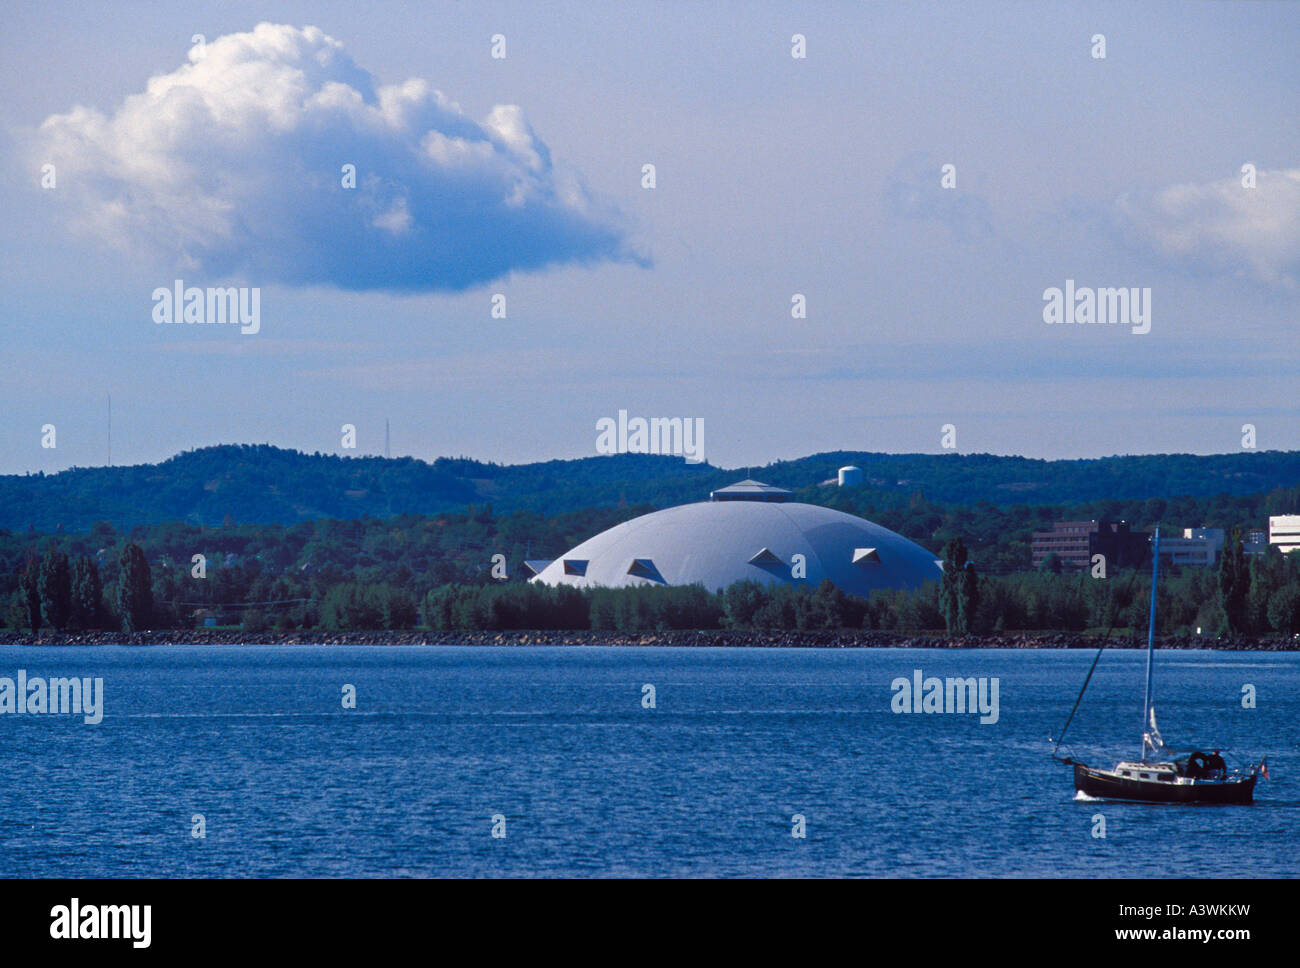 A sailboat motors out onto Lake Superior in Marquette Mich with a cloud and the NMU Superior Dome in the background - Stock Image